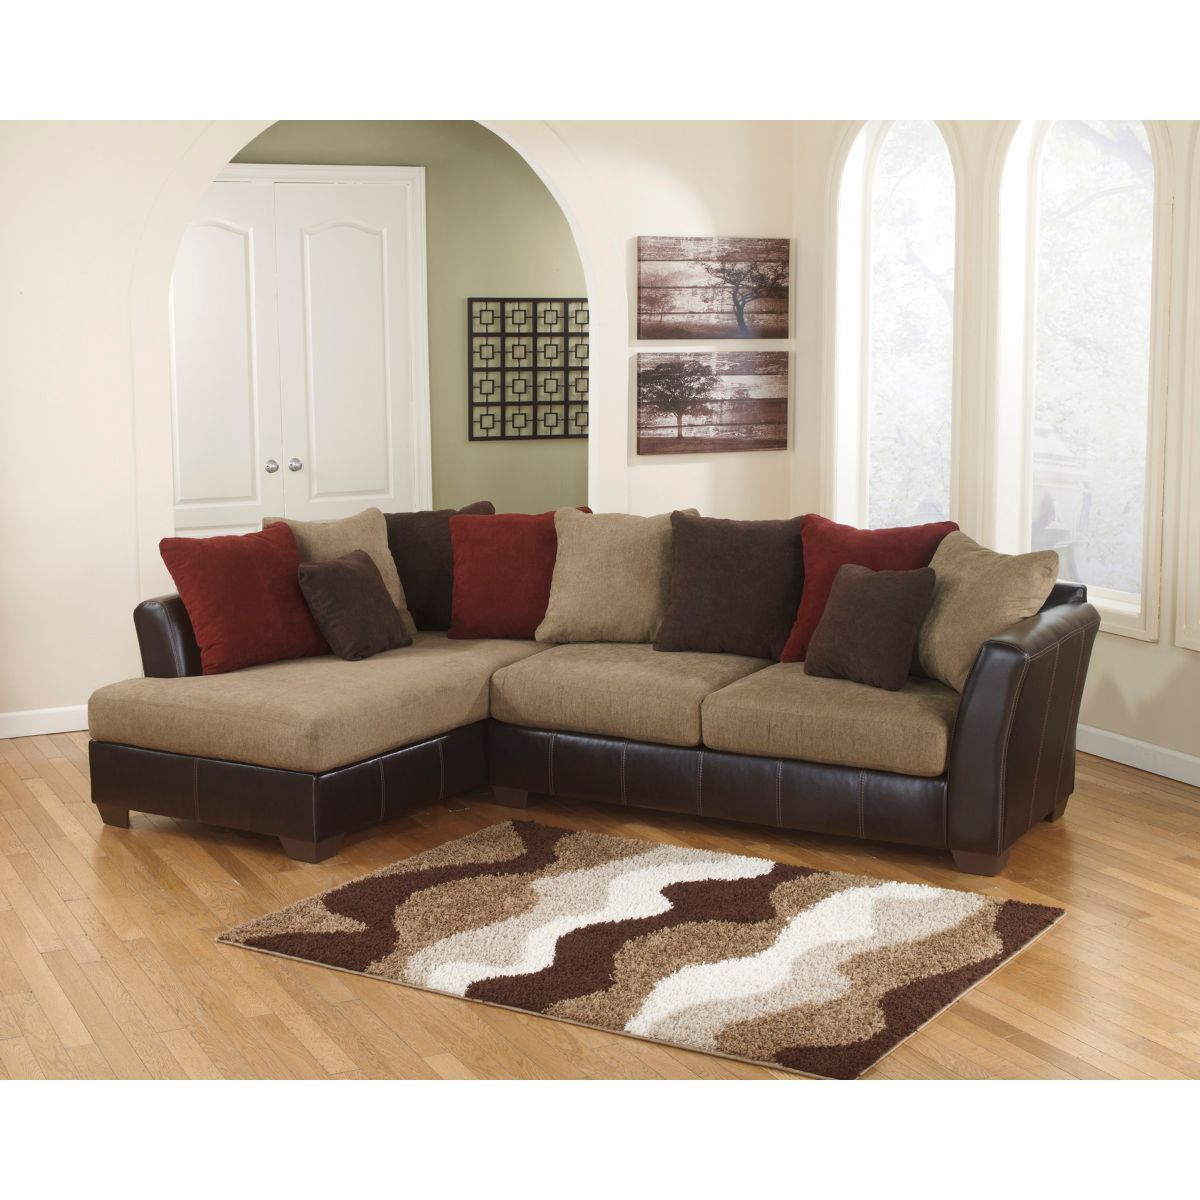 L6 1 Sanya Right Arm Facing Sectional Direct Buy 656 14 Masoli Sectional Is Same Couch Only Has Beig Ashley Furniture Sectional Ashley Furniture Furniture